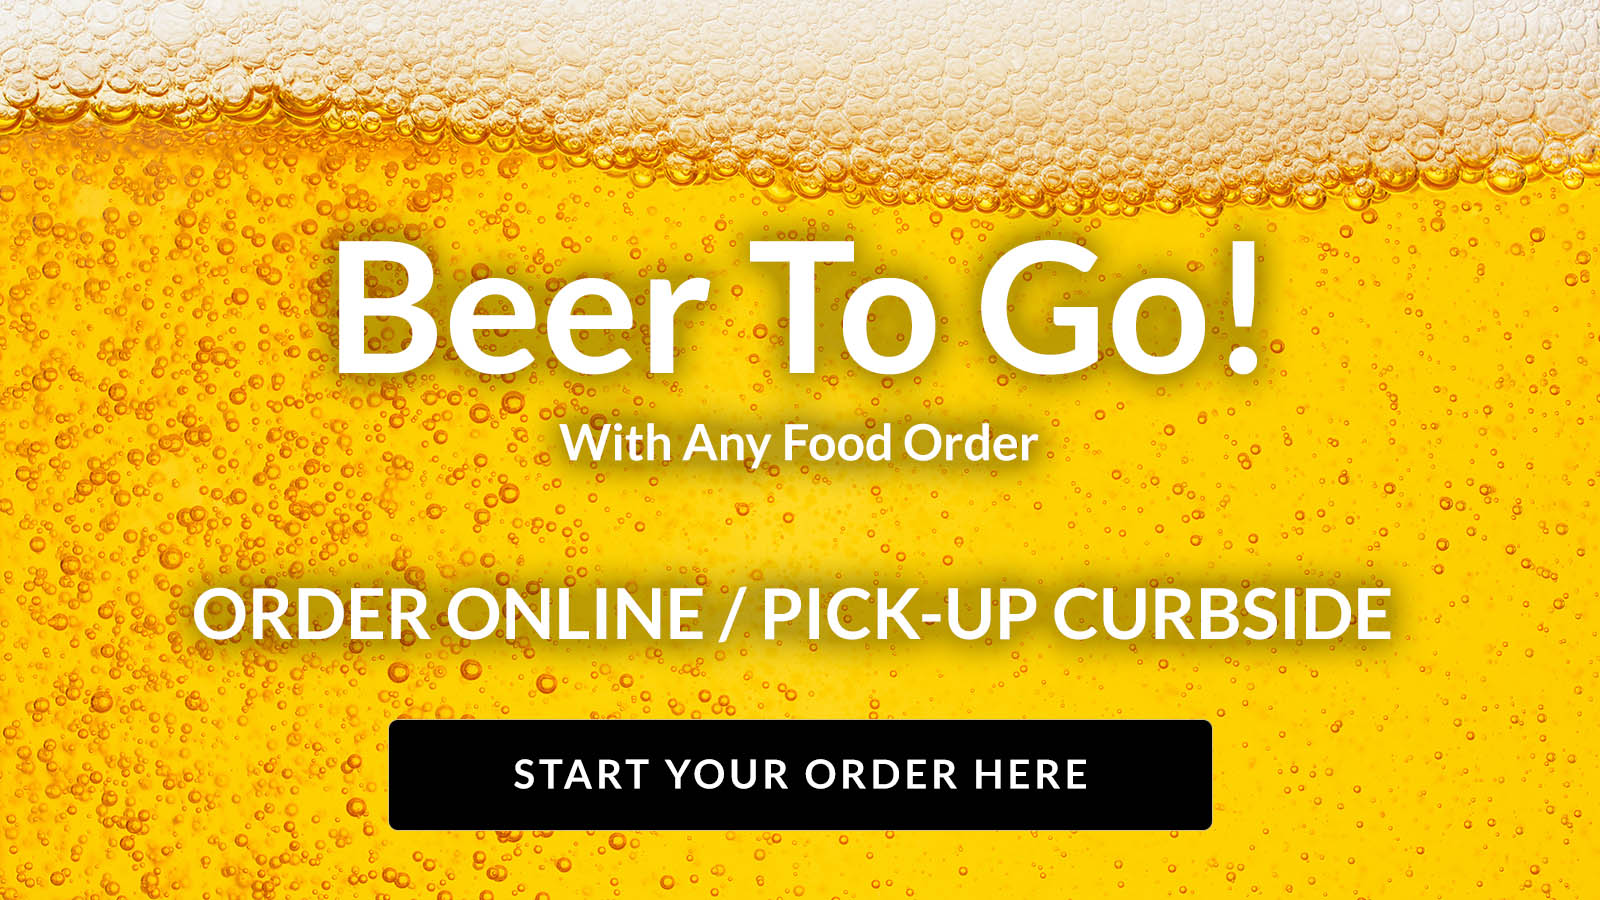 Hop Creek Pub - Beer and Food To Go, Order Online Now!